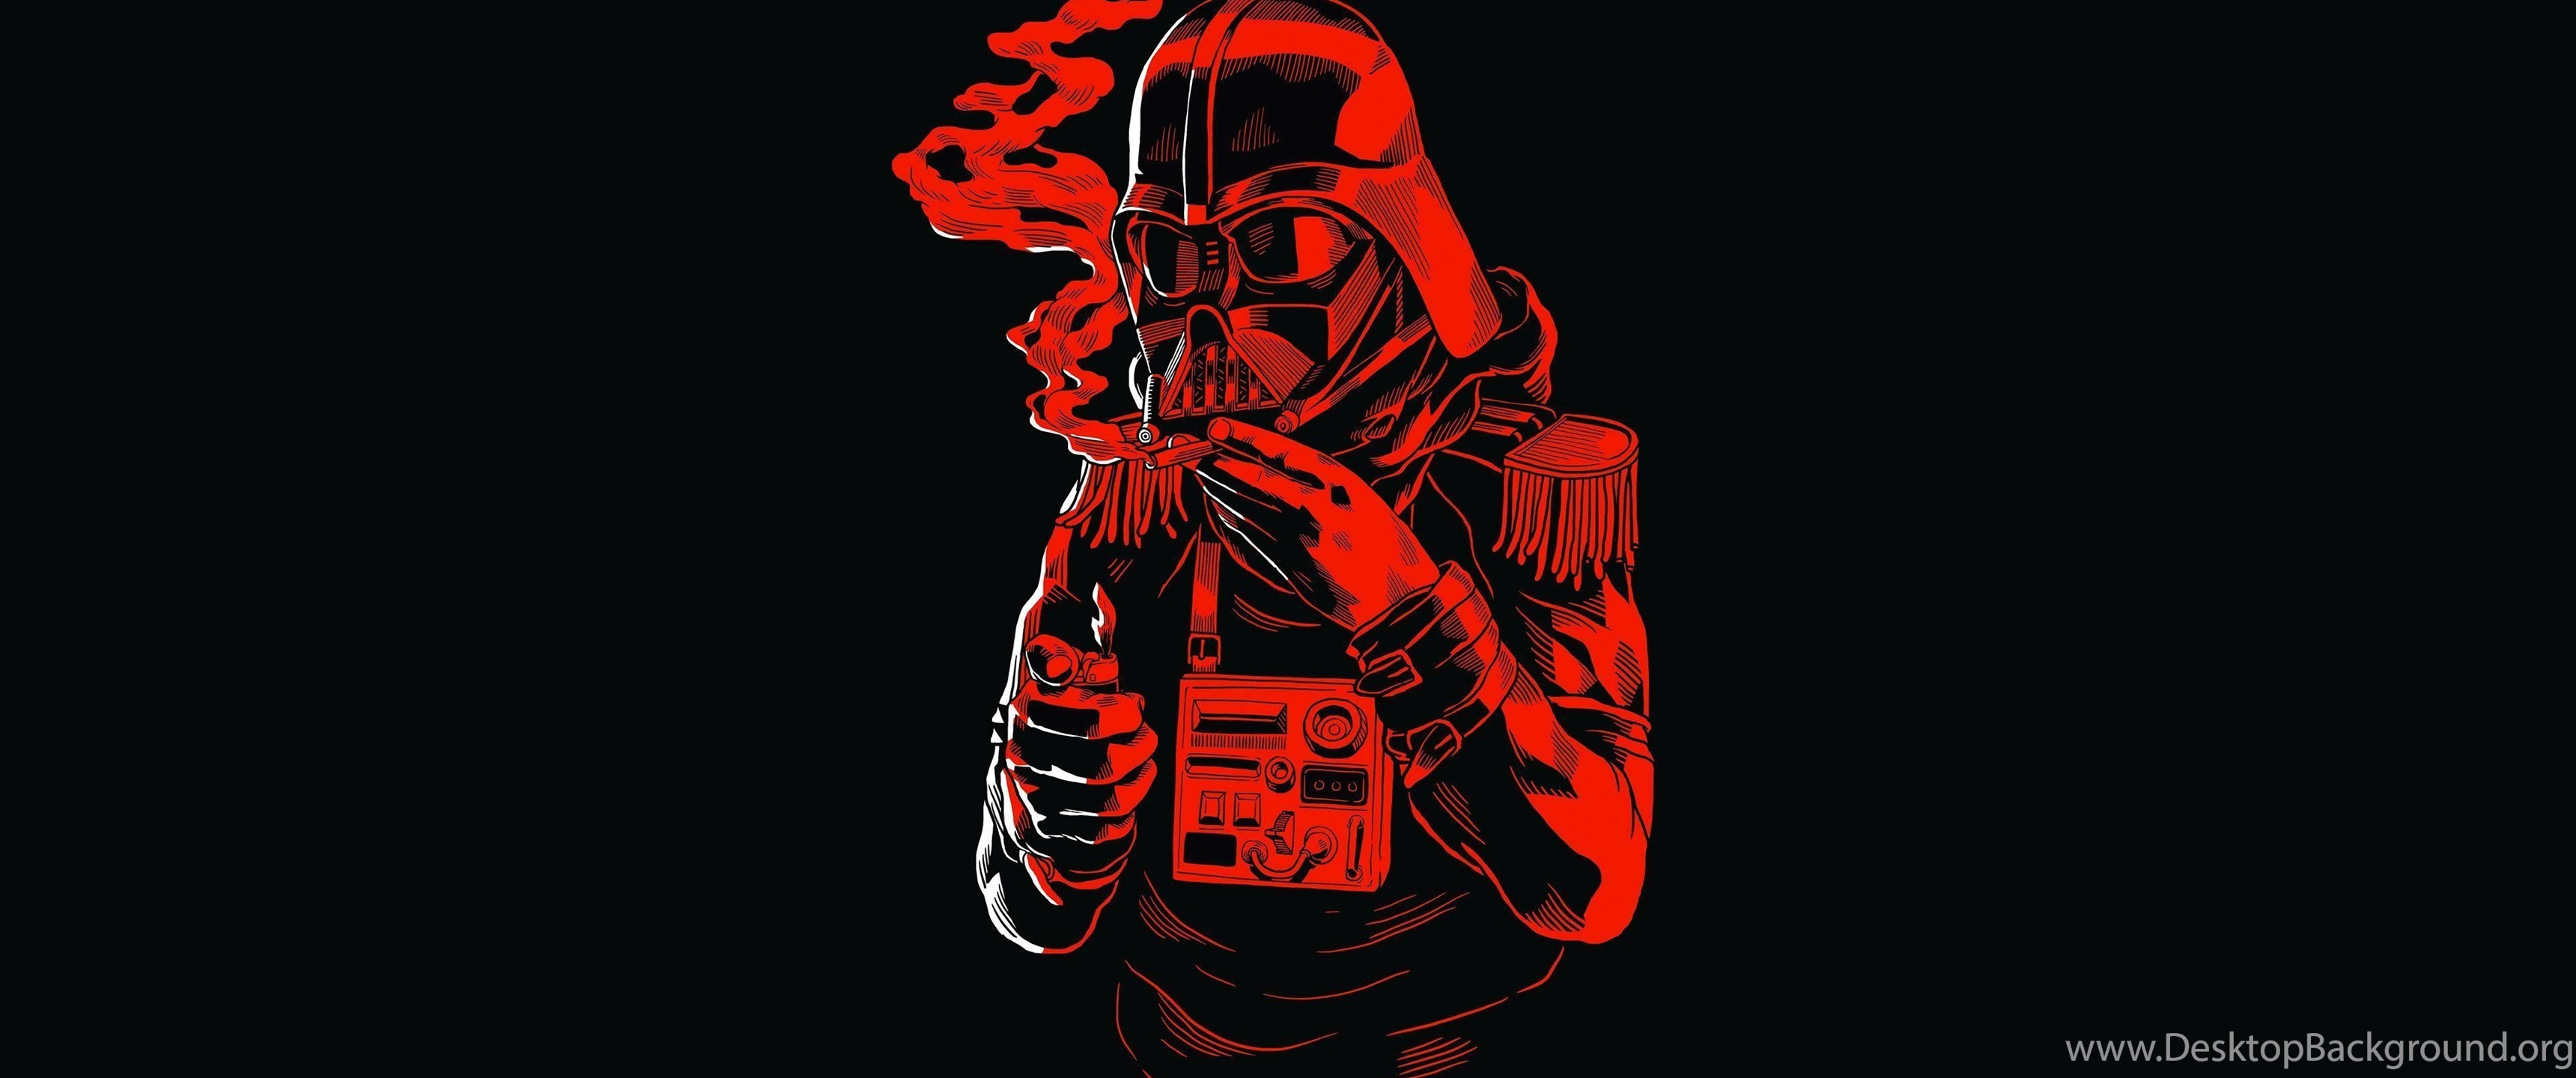 Red darth vader smoking wallpapers movie wallpapers desktop background - Dark smoking wallpapers ...